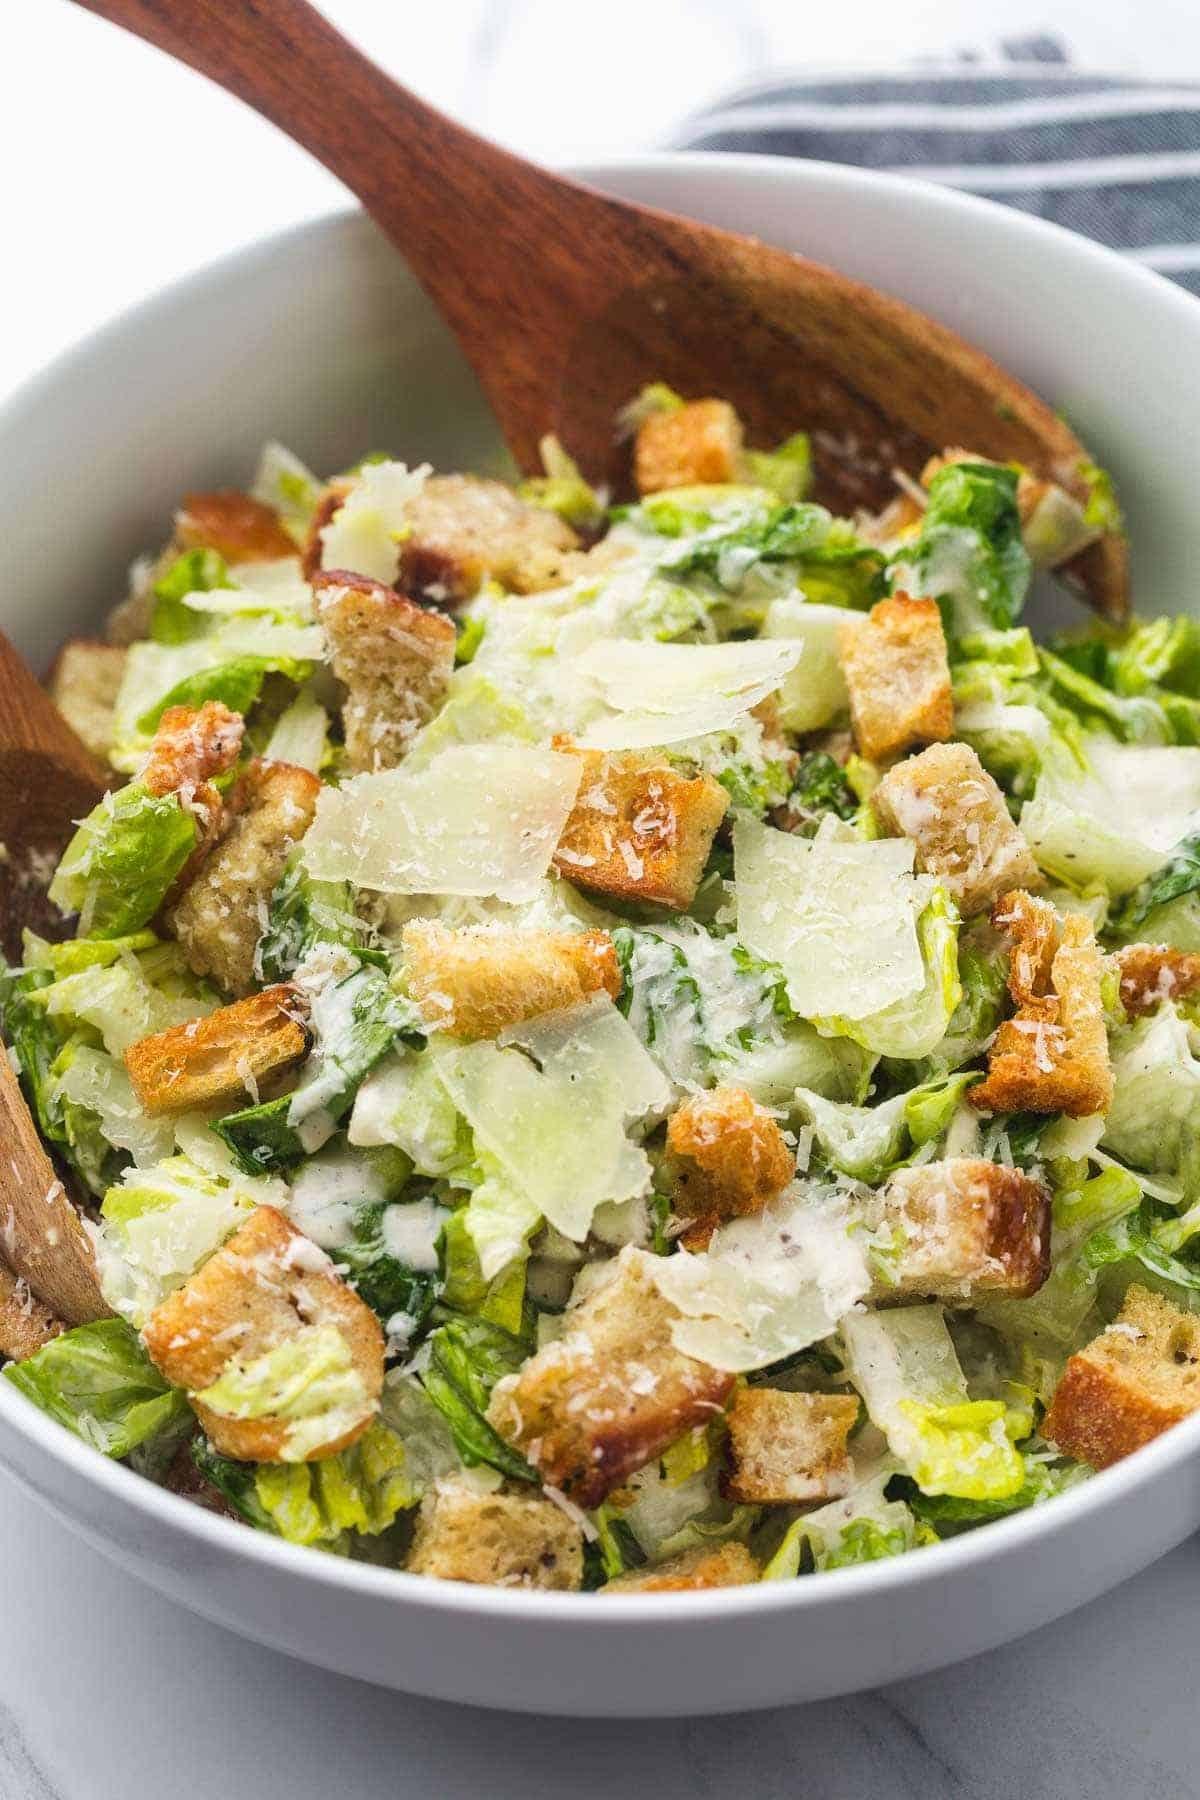 Caesar salad in a large white salad bowl, and wooden salad servers